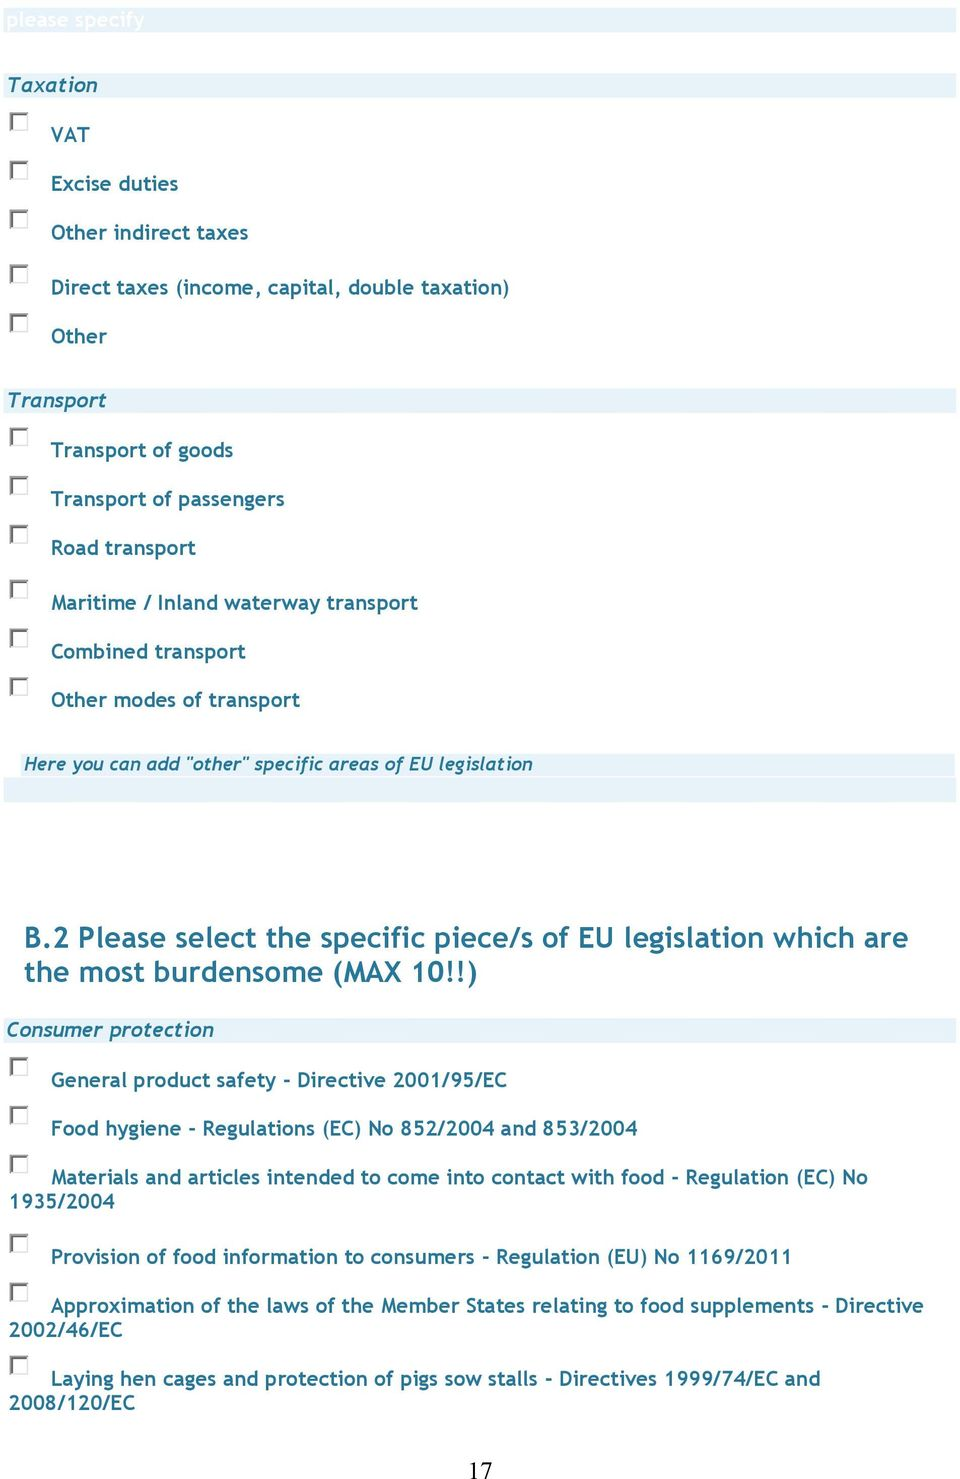 2 Please select the specific piece/s of EU legislation which are the most burdensome (MAX 10!